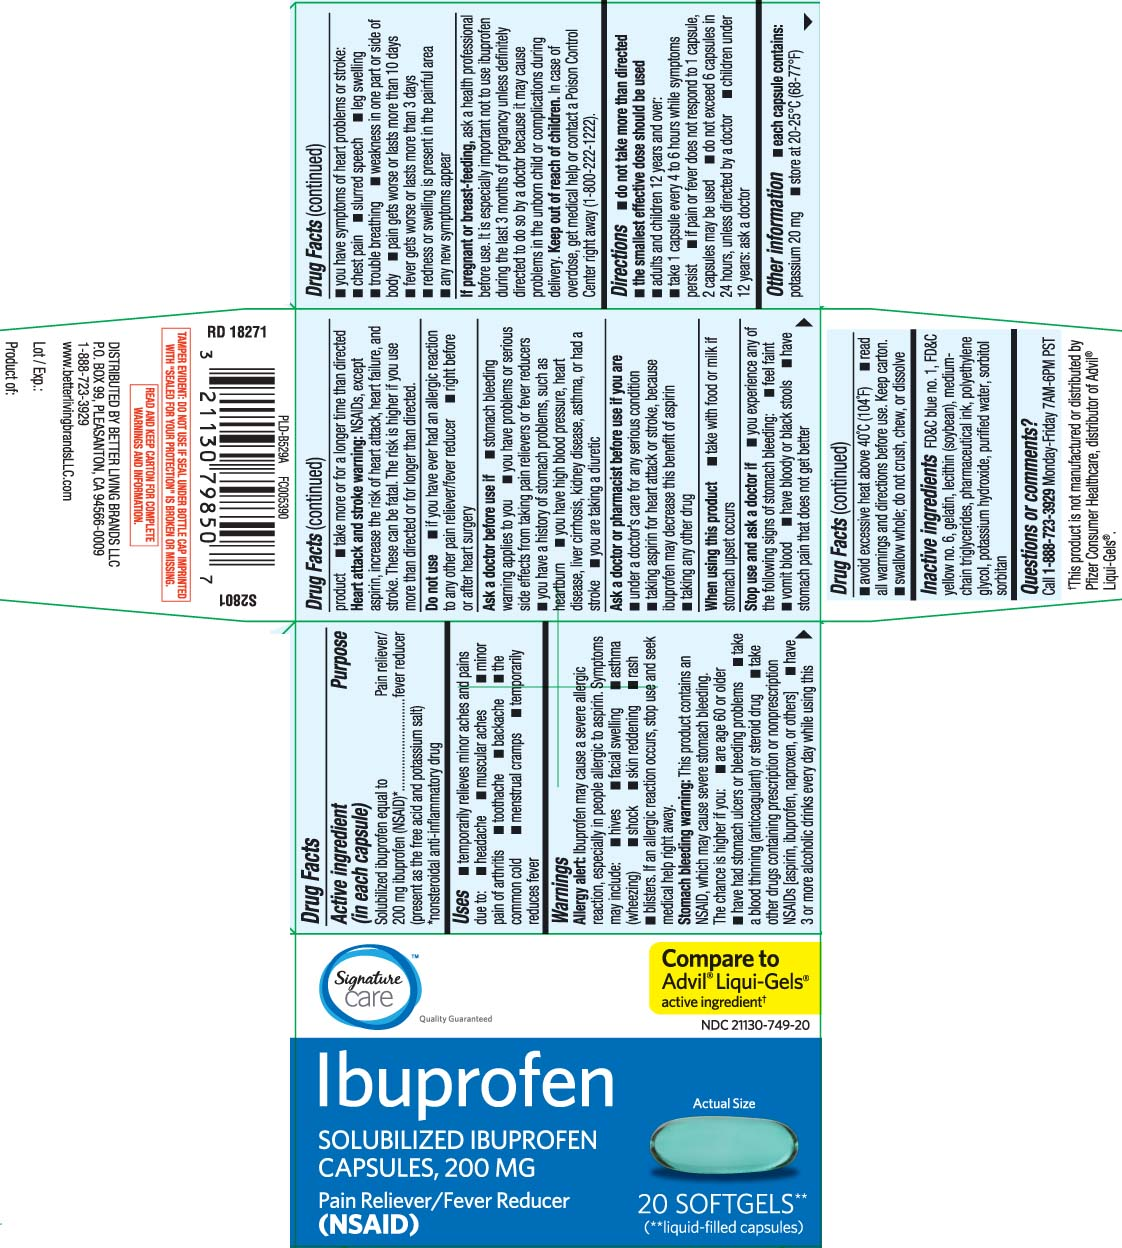 Solubilized ibuprofen equal to 200 mg ibuprofen (NSAID)* (present as the free acid and potassium salt) *nonsteroidal anti-inflammatory